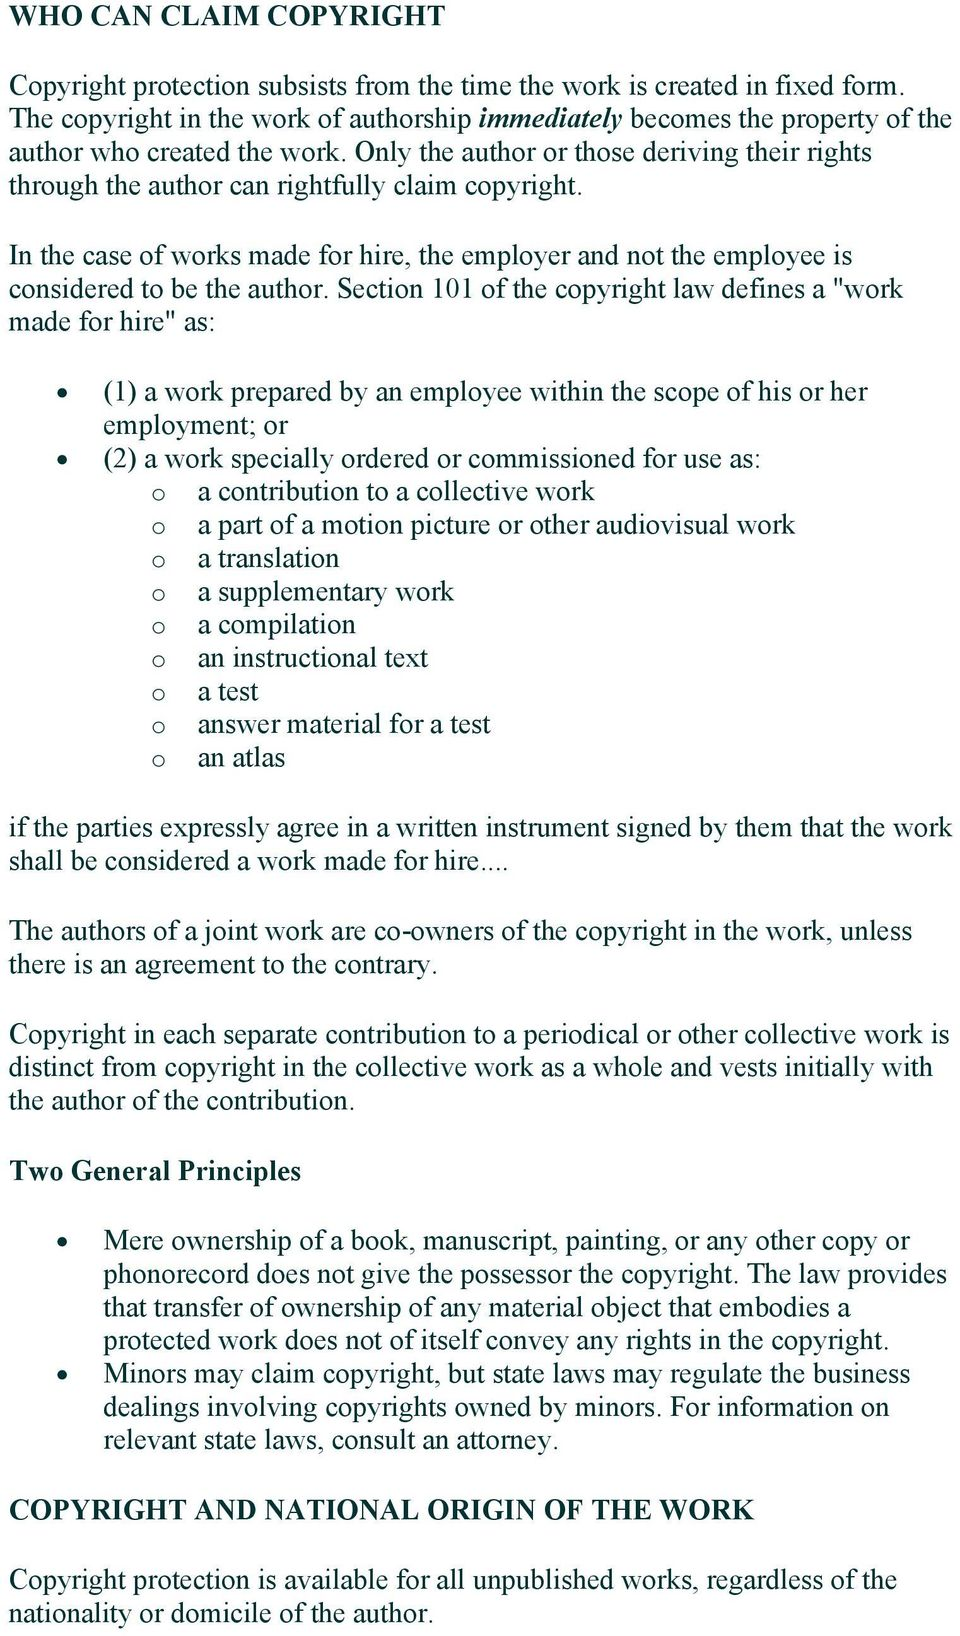 Only the author or those deriving their rights through the author can rightfully claim copyright. In the case of works made for hire, the employer and not the employee is considered to be the author.